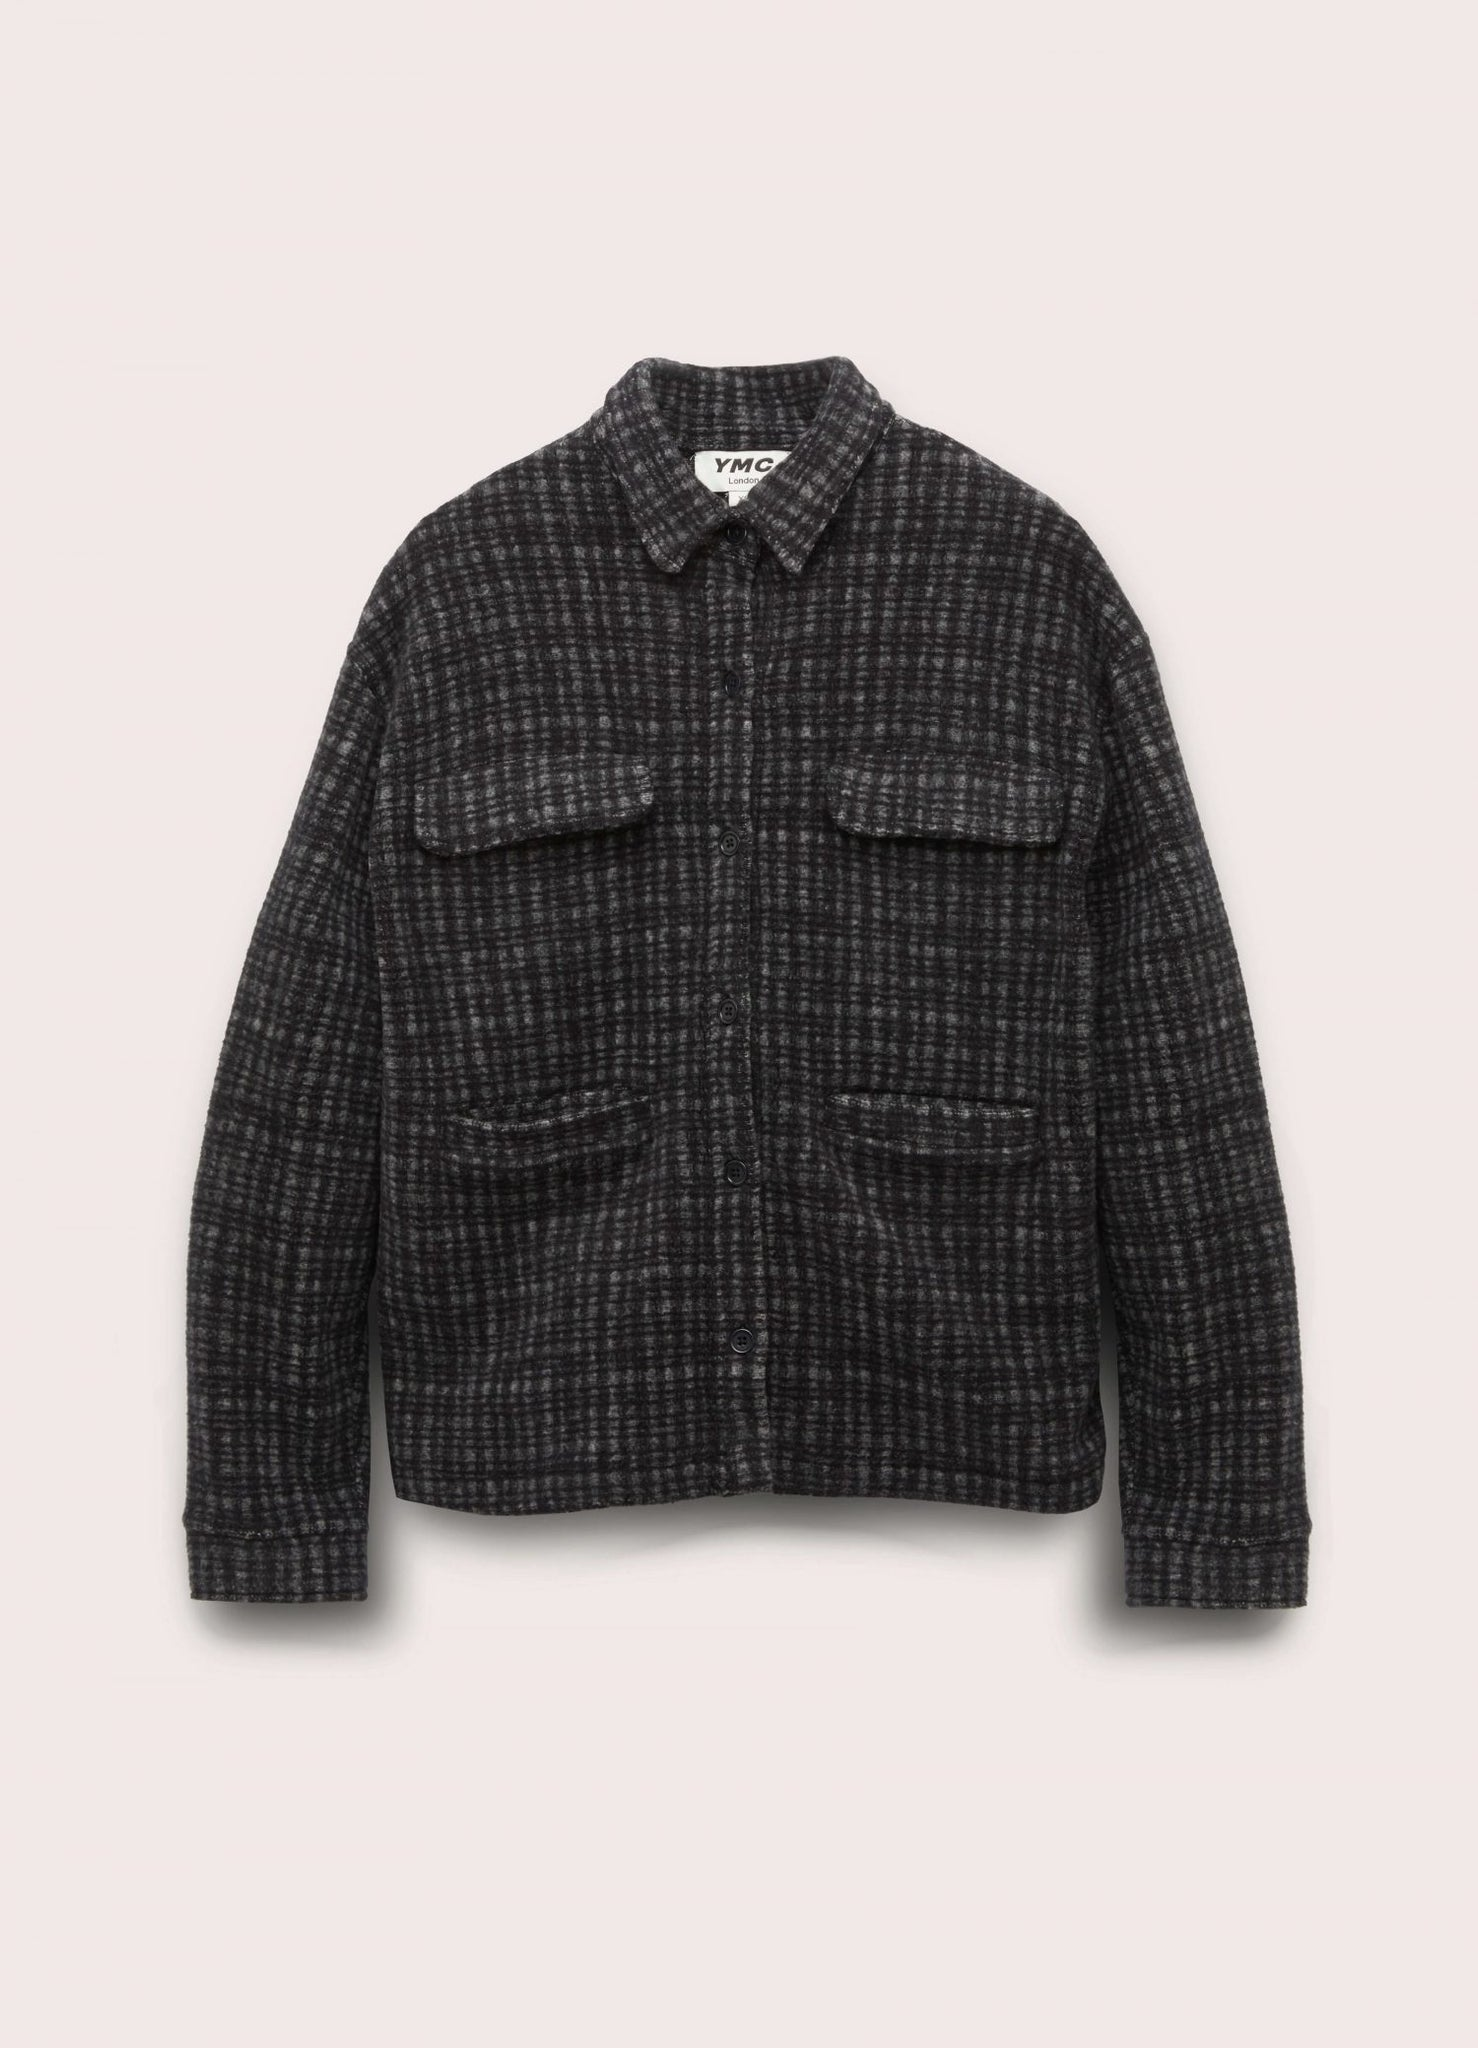 The Pool Cotton Fleece Jacquard Shirt in Black and Grey Check